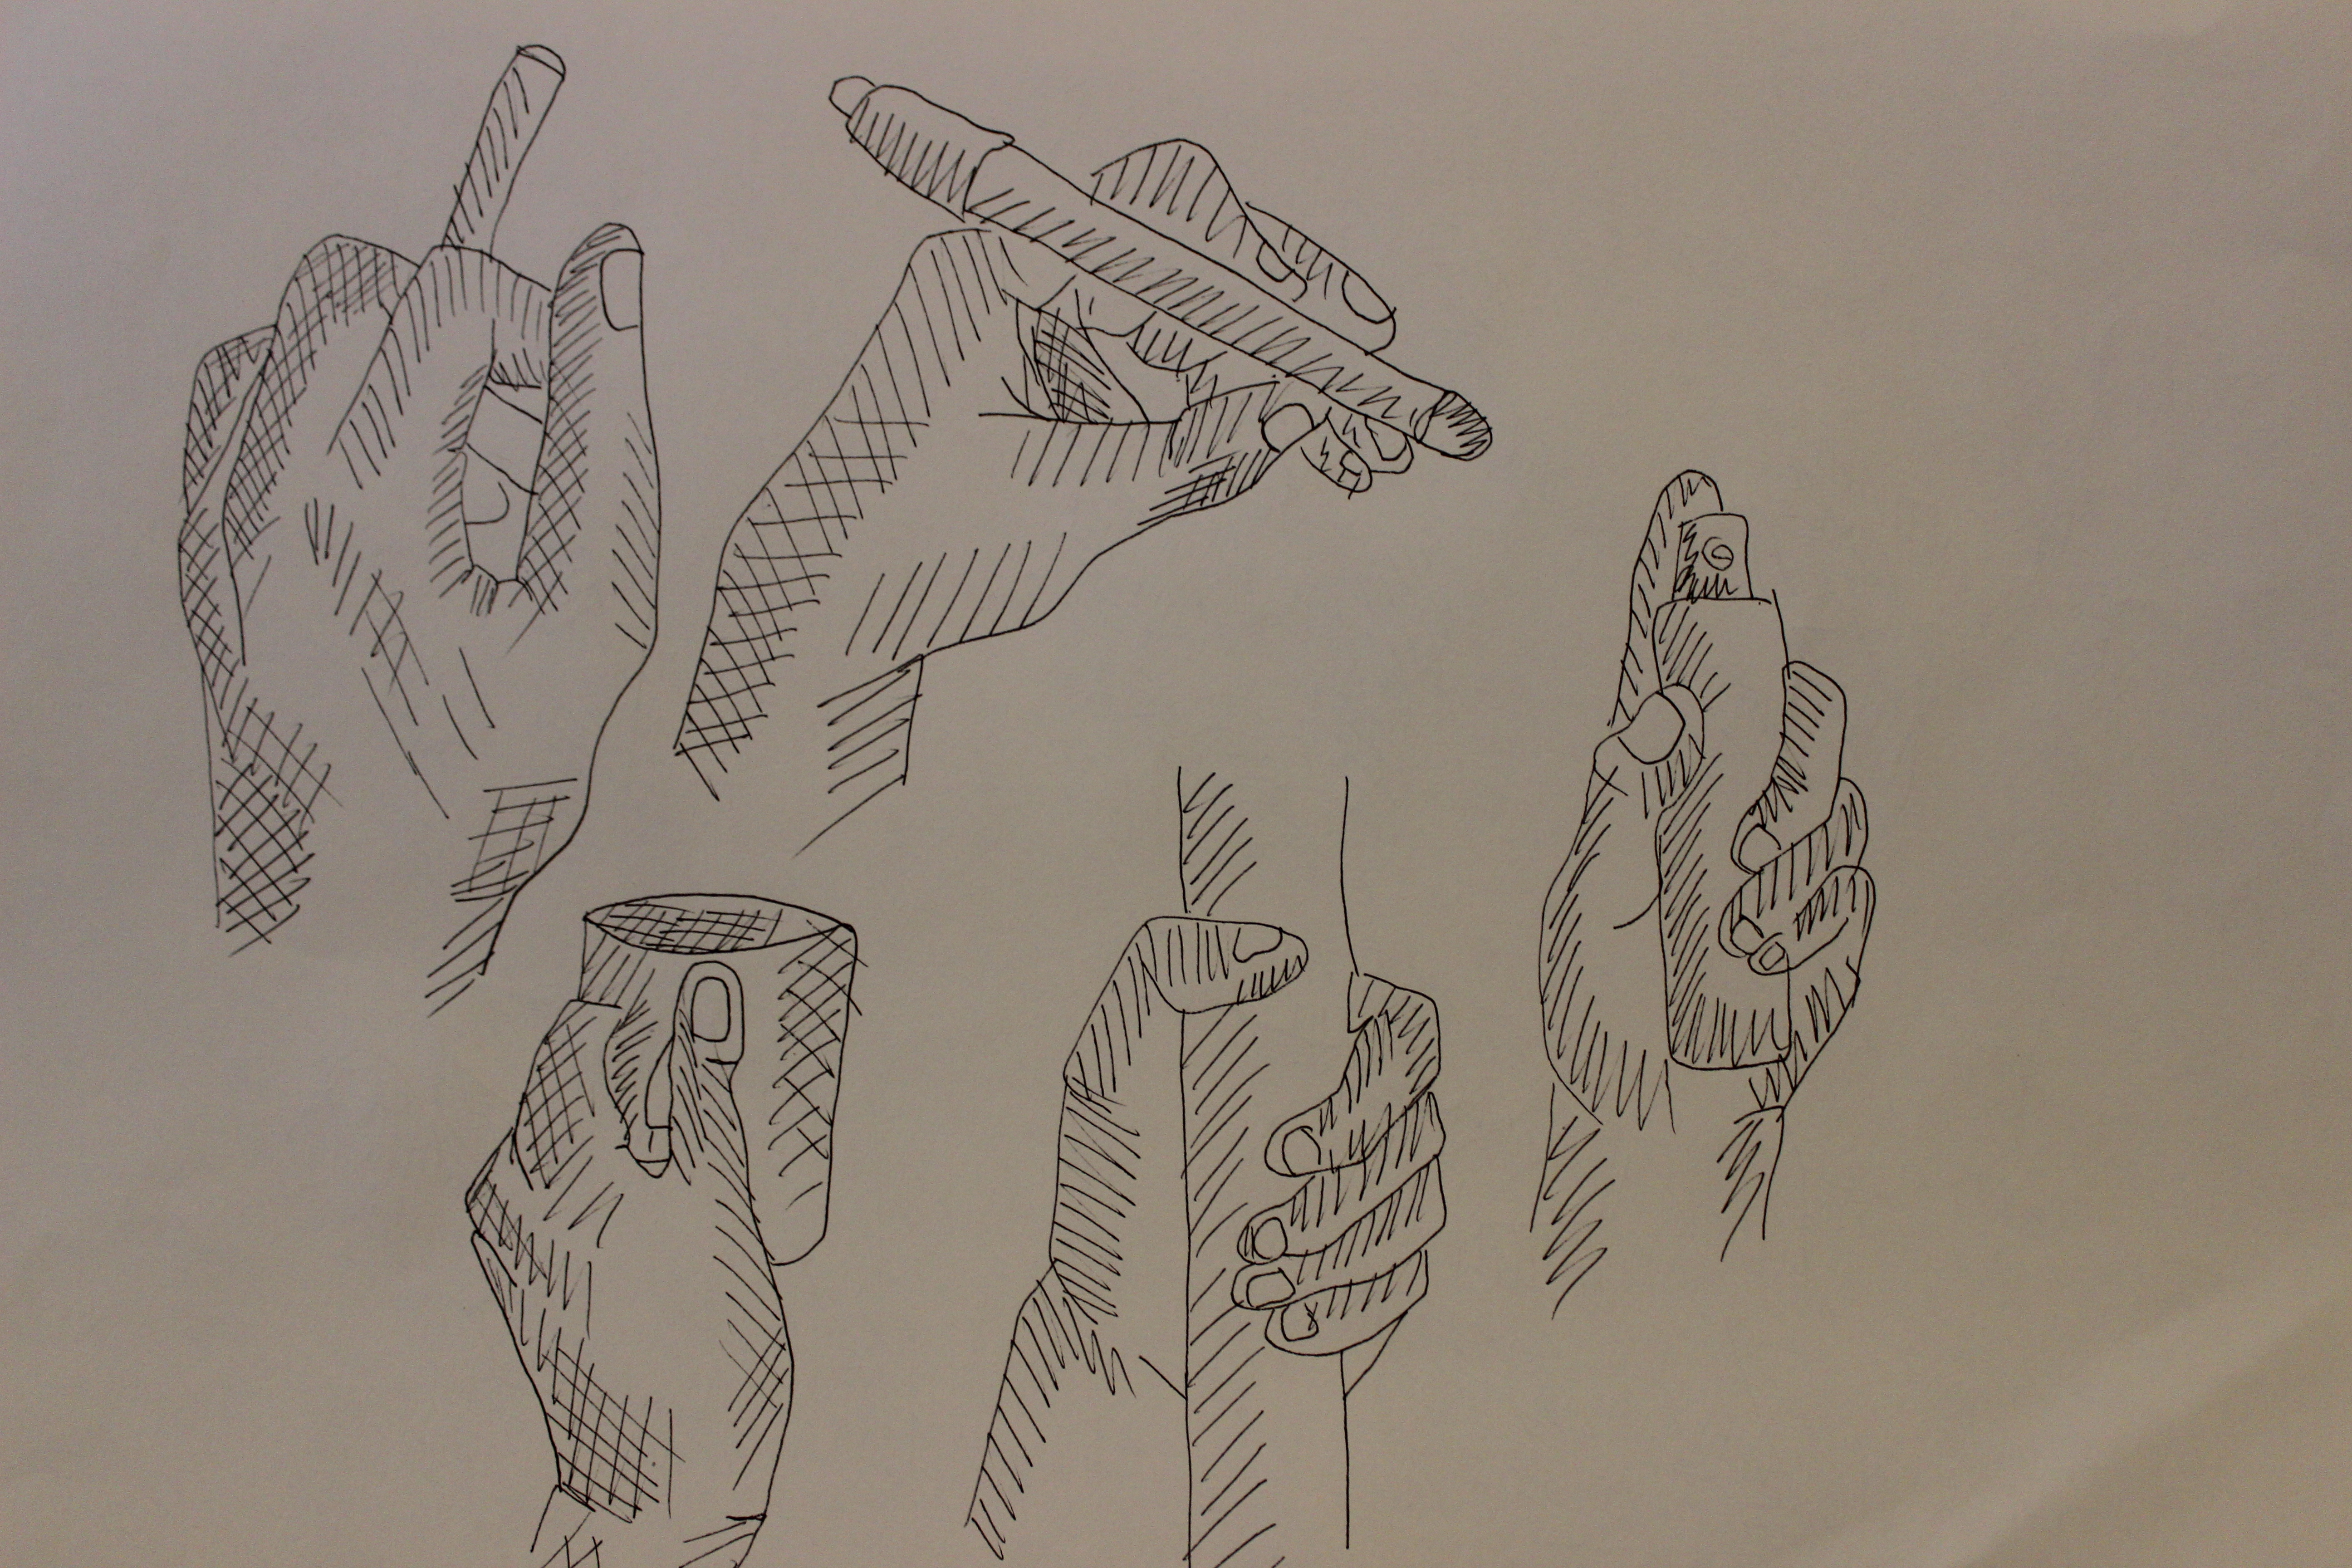 5184x3456 Sketch. Just Line, Human Body. Drawing Hands Holding Something